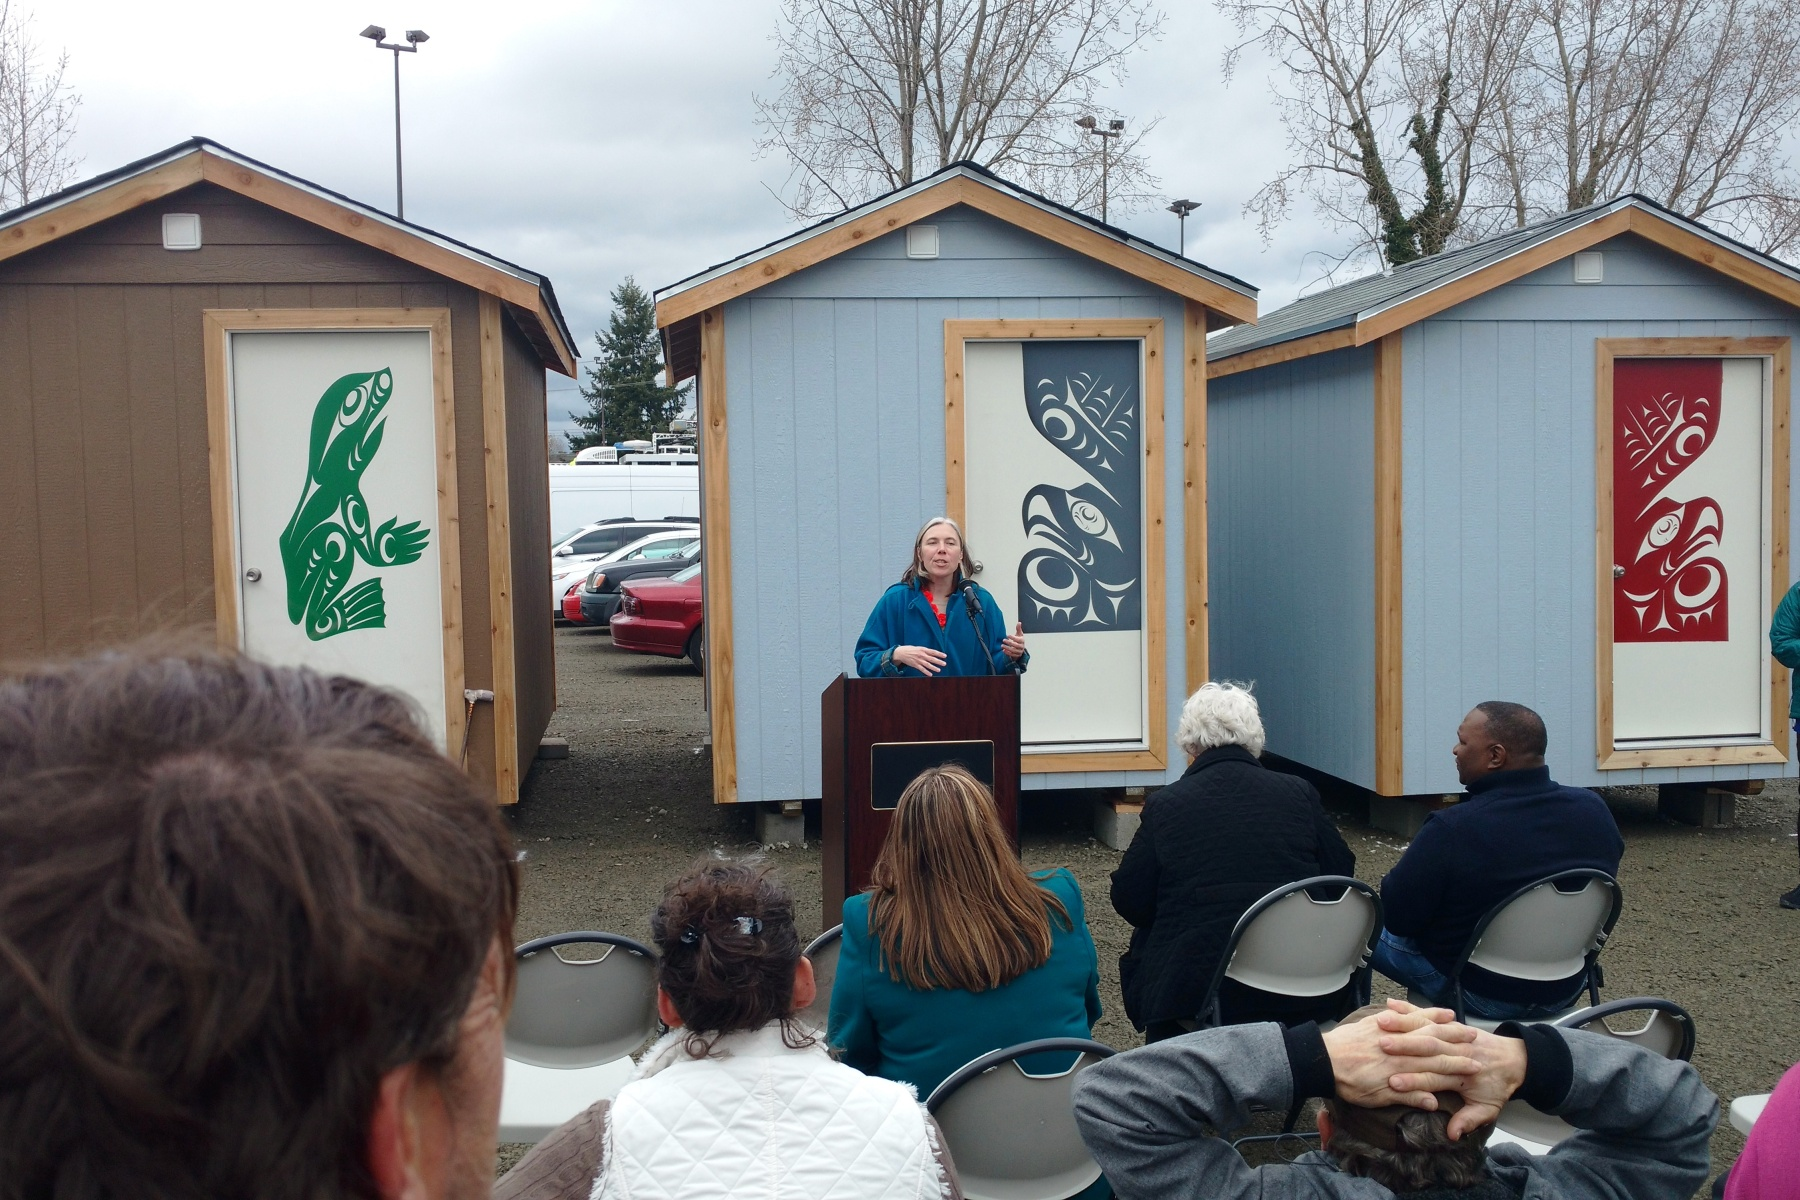 Nickelsville And The Tulalip Tribes Held A Ceremony For Georgetown Tiny House Village Fourth City Of Seattle Sanctioned Homeless Encampment